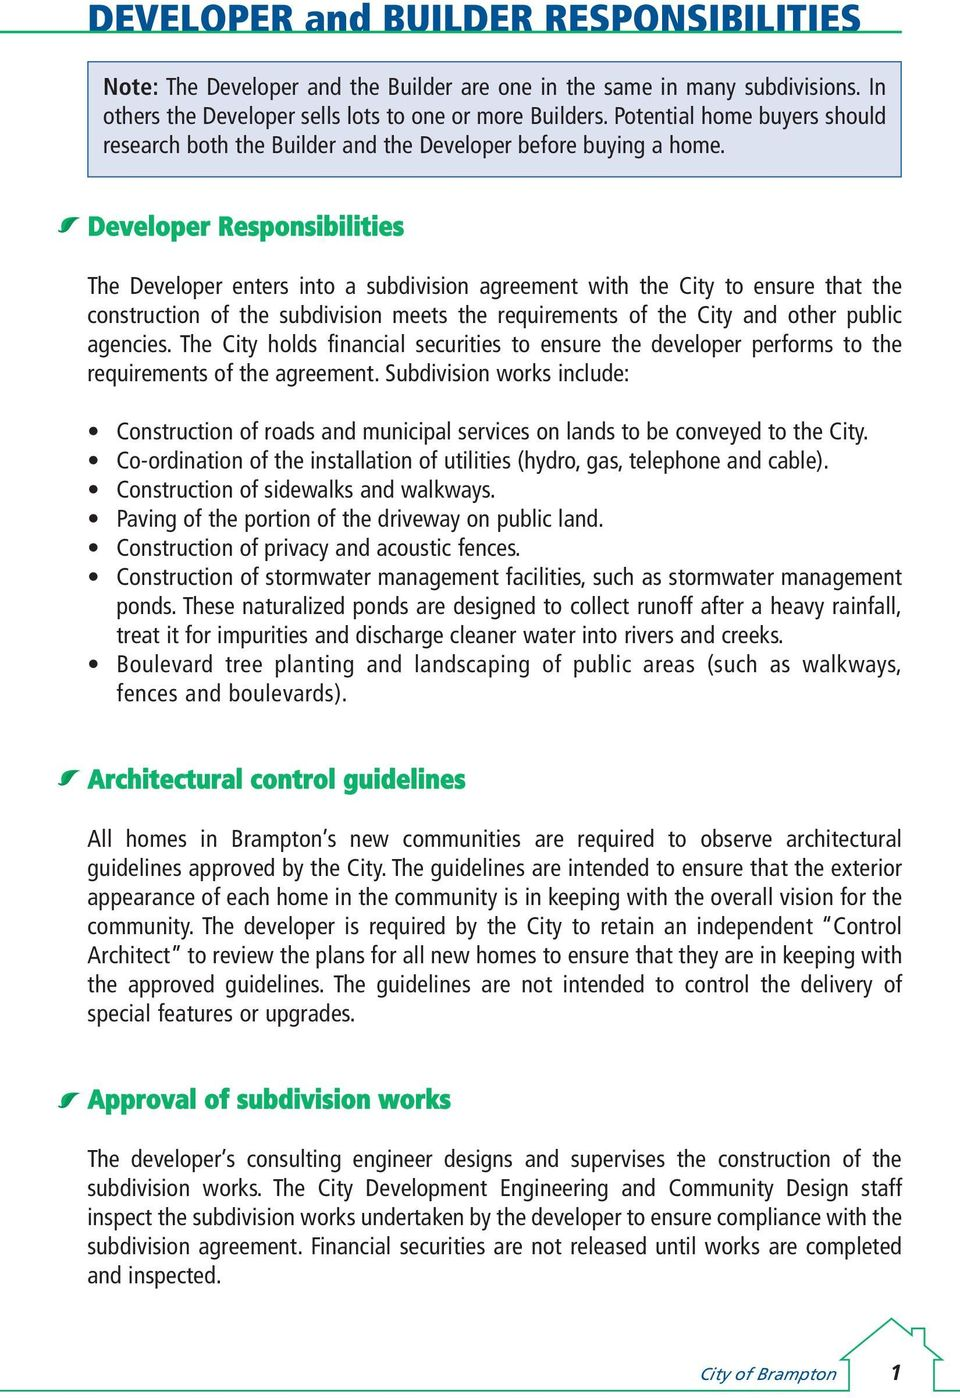 Developer Responsibilities The Developer enters into a subdivision agreement with the City to ensure that the construction of the subdivision meets the requirements of the City and other public